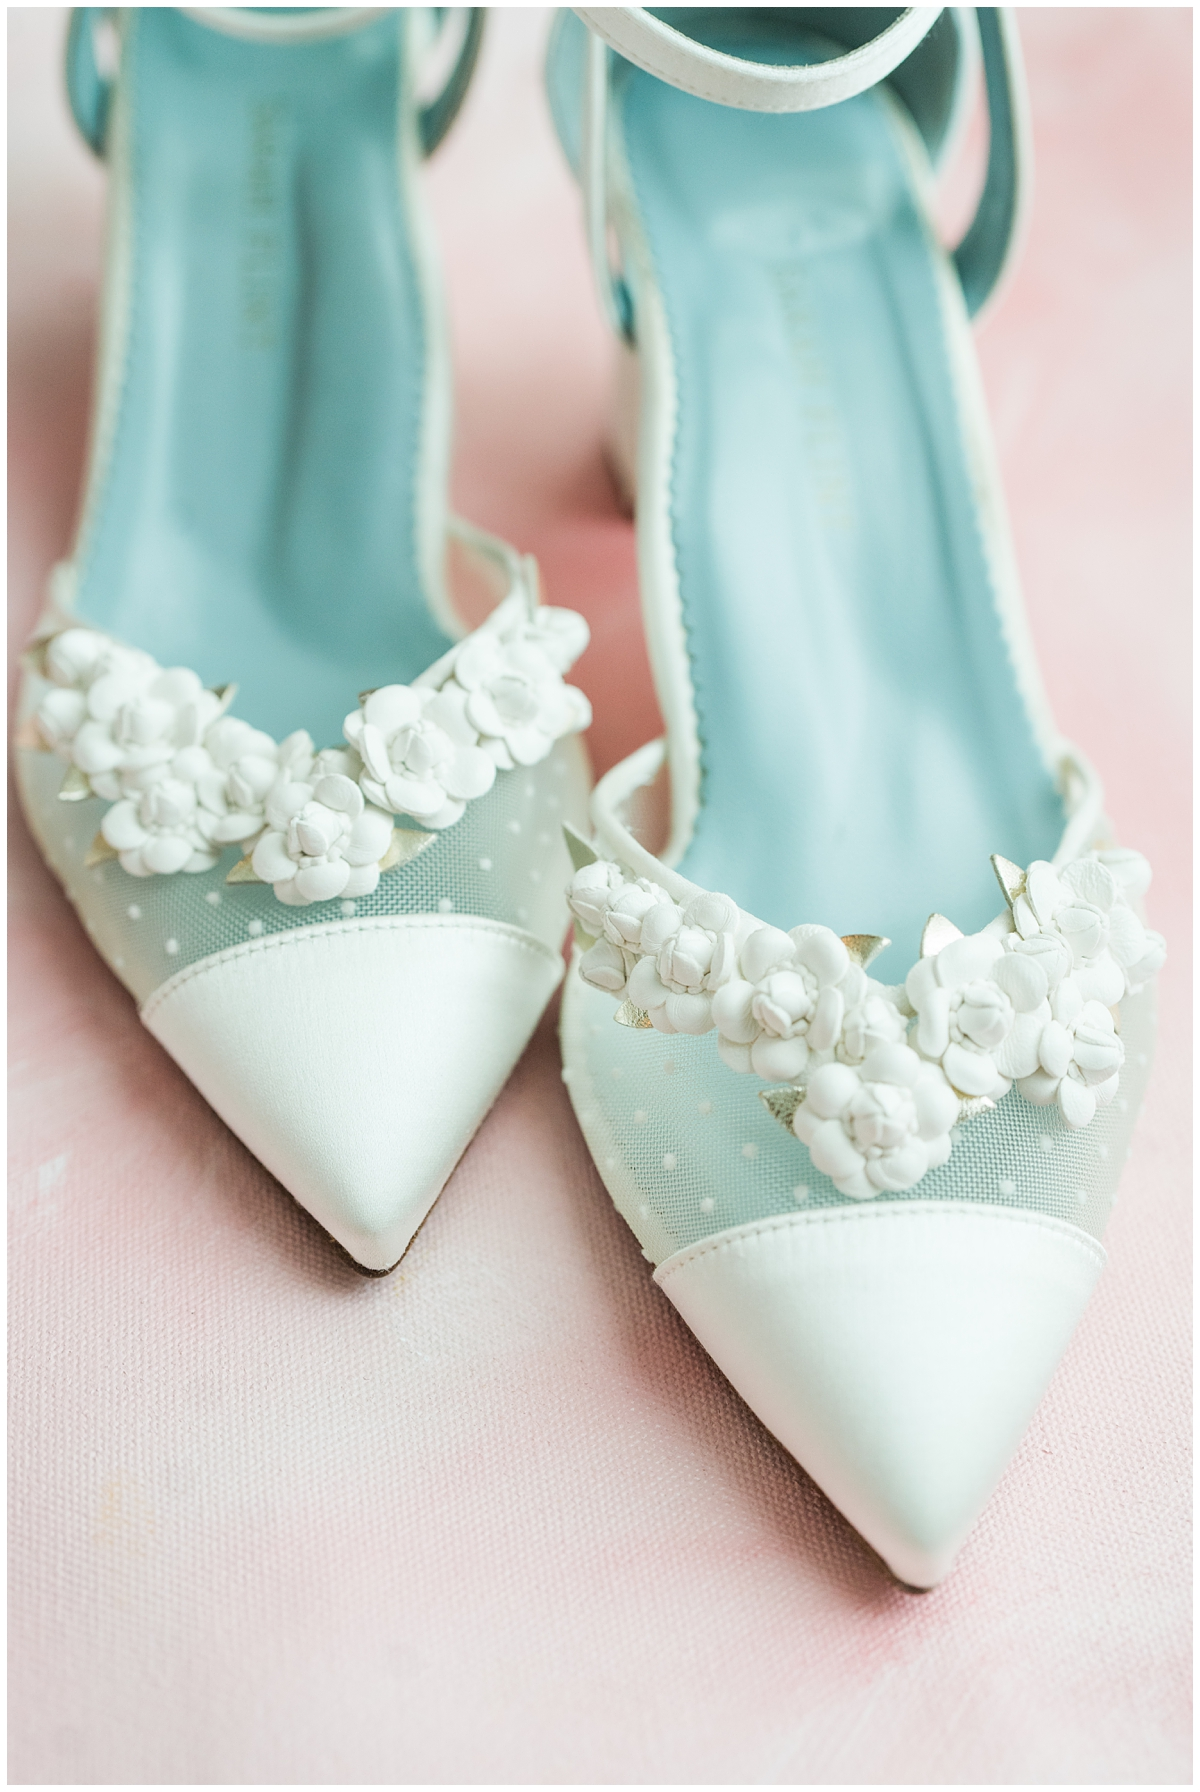 bride's teal shoes with white details for Boone Hall wedding